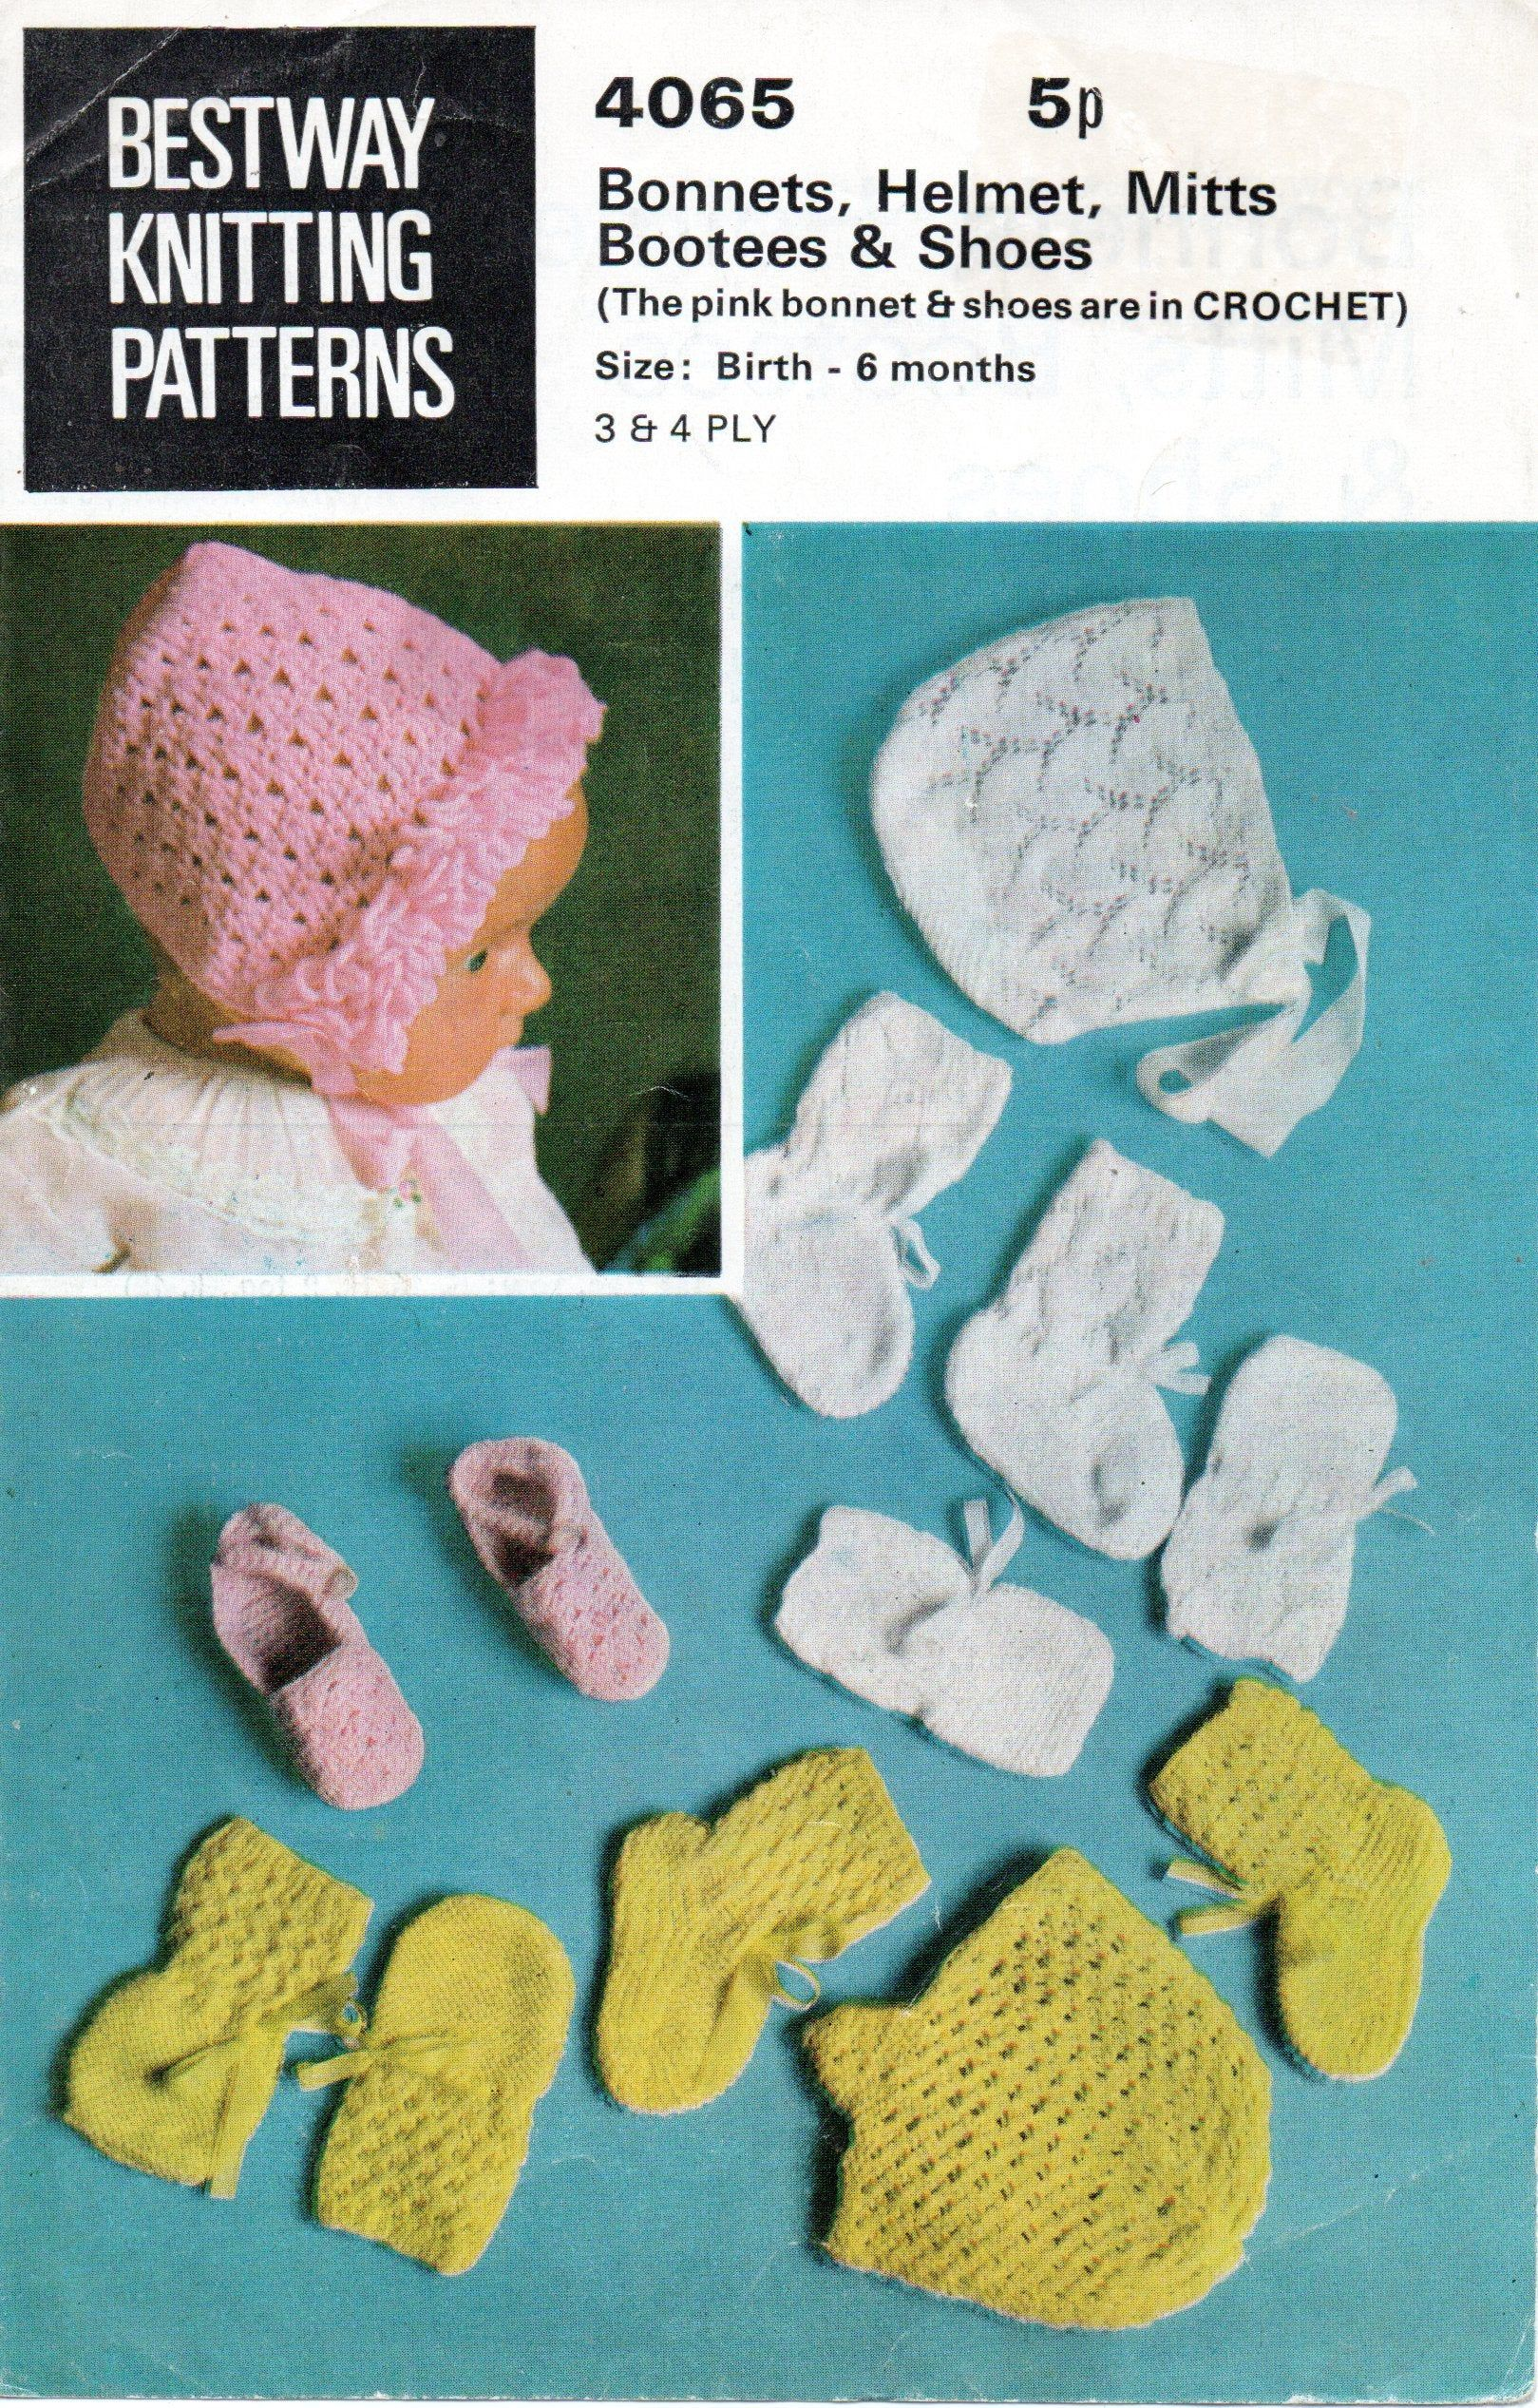 Vintage Baby Knitting Crochet Pattern Bonnets Hats, mitts and Boots 3 and 4 ply birth to 6 months Bestway 4065 pdf Download